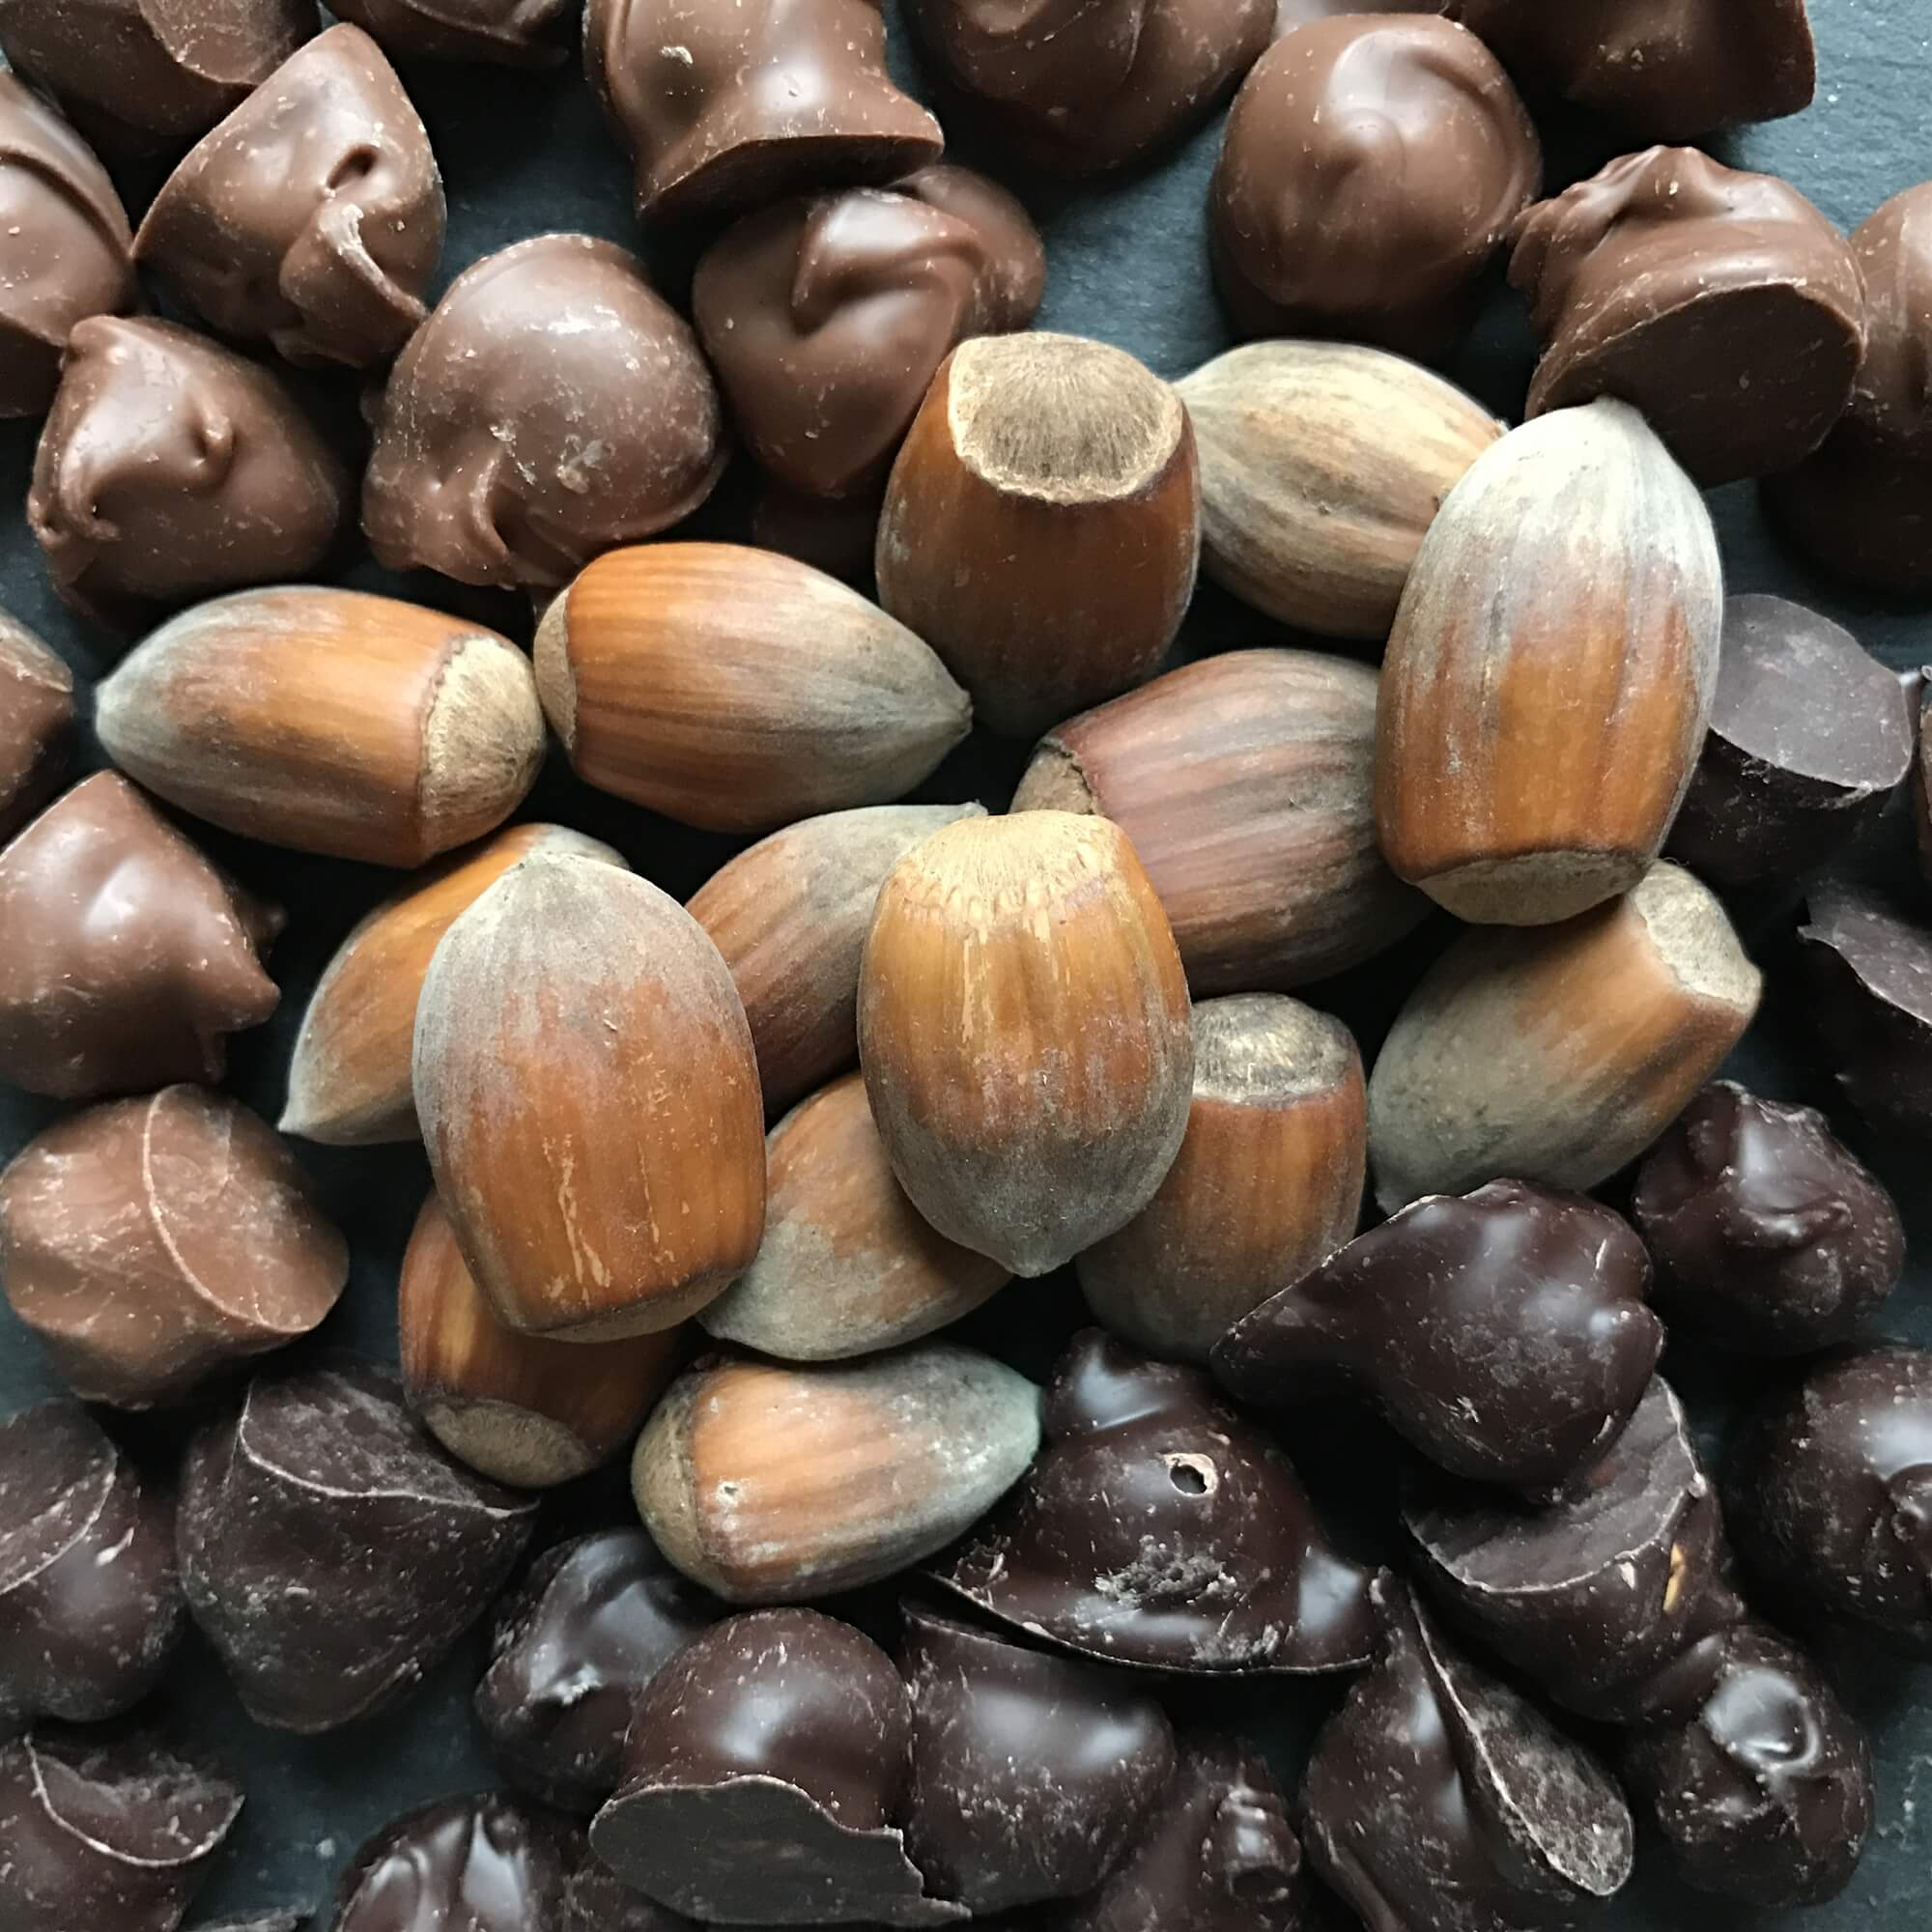 Plattinums Kentish Cobnuts - Plattinums Kentish Cobnuts are lightly caramalised and enrobed in a 45% Belgian milk chocolate or 70% Belgian dark chocolate